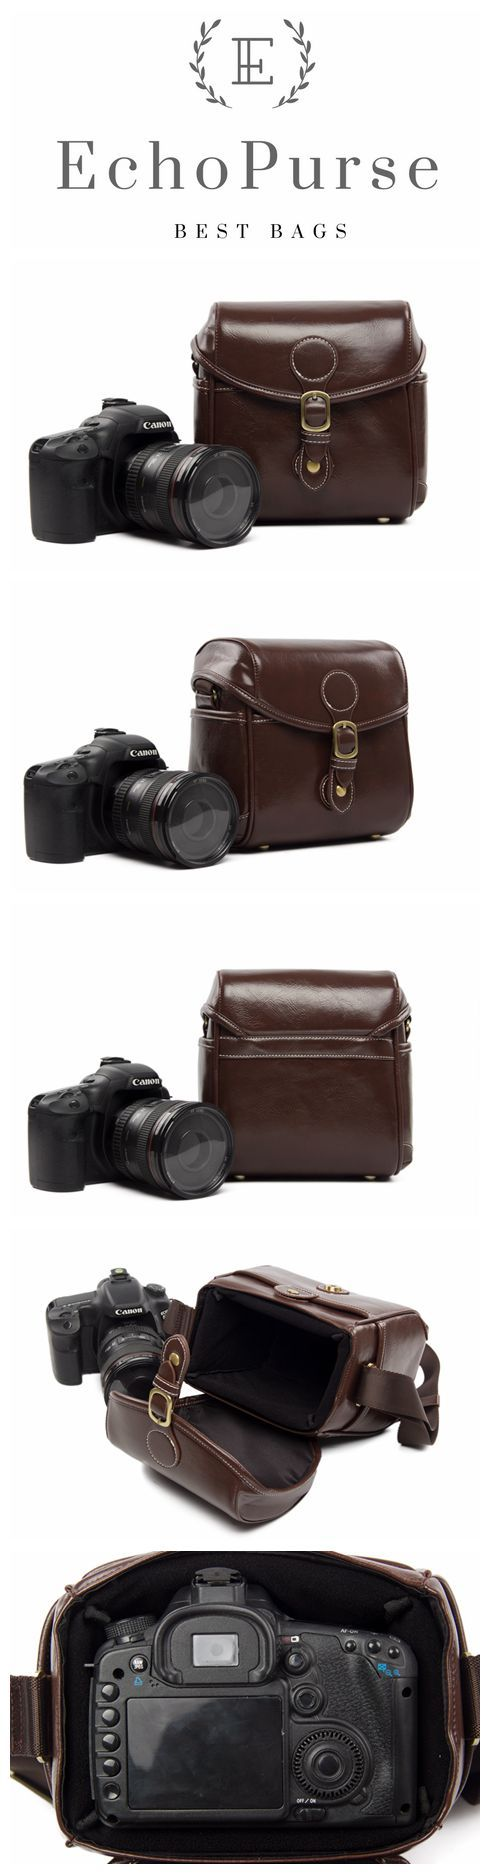 PU Leather DSLR Camera Purse, Coffee SLR Camera Case 288 #camerapurse